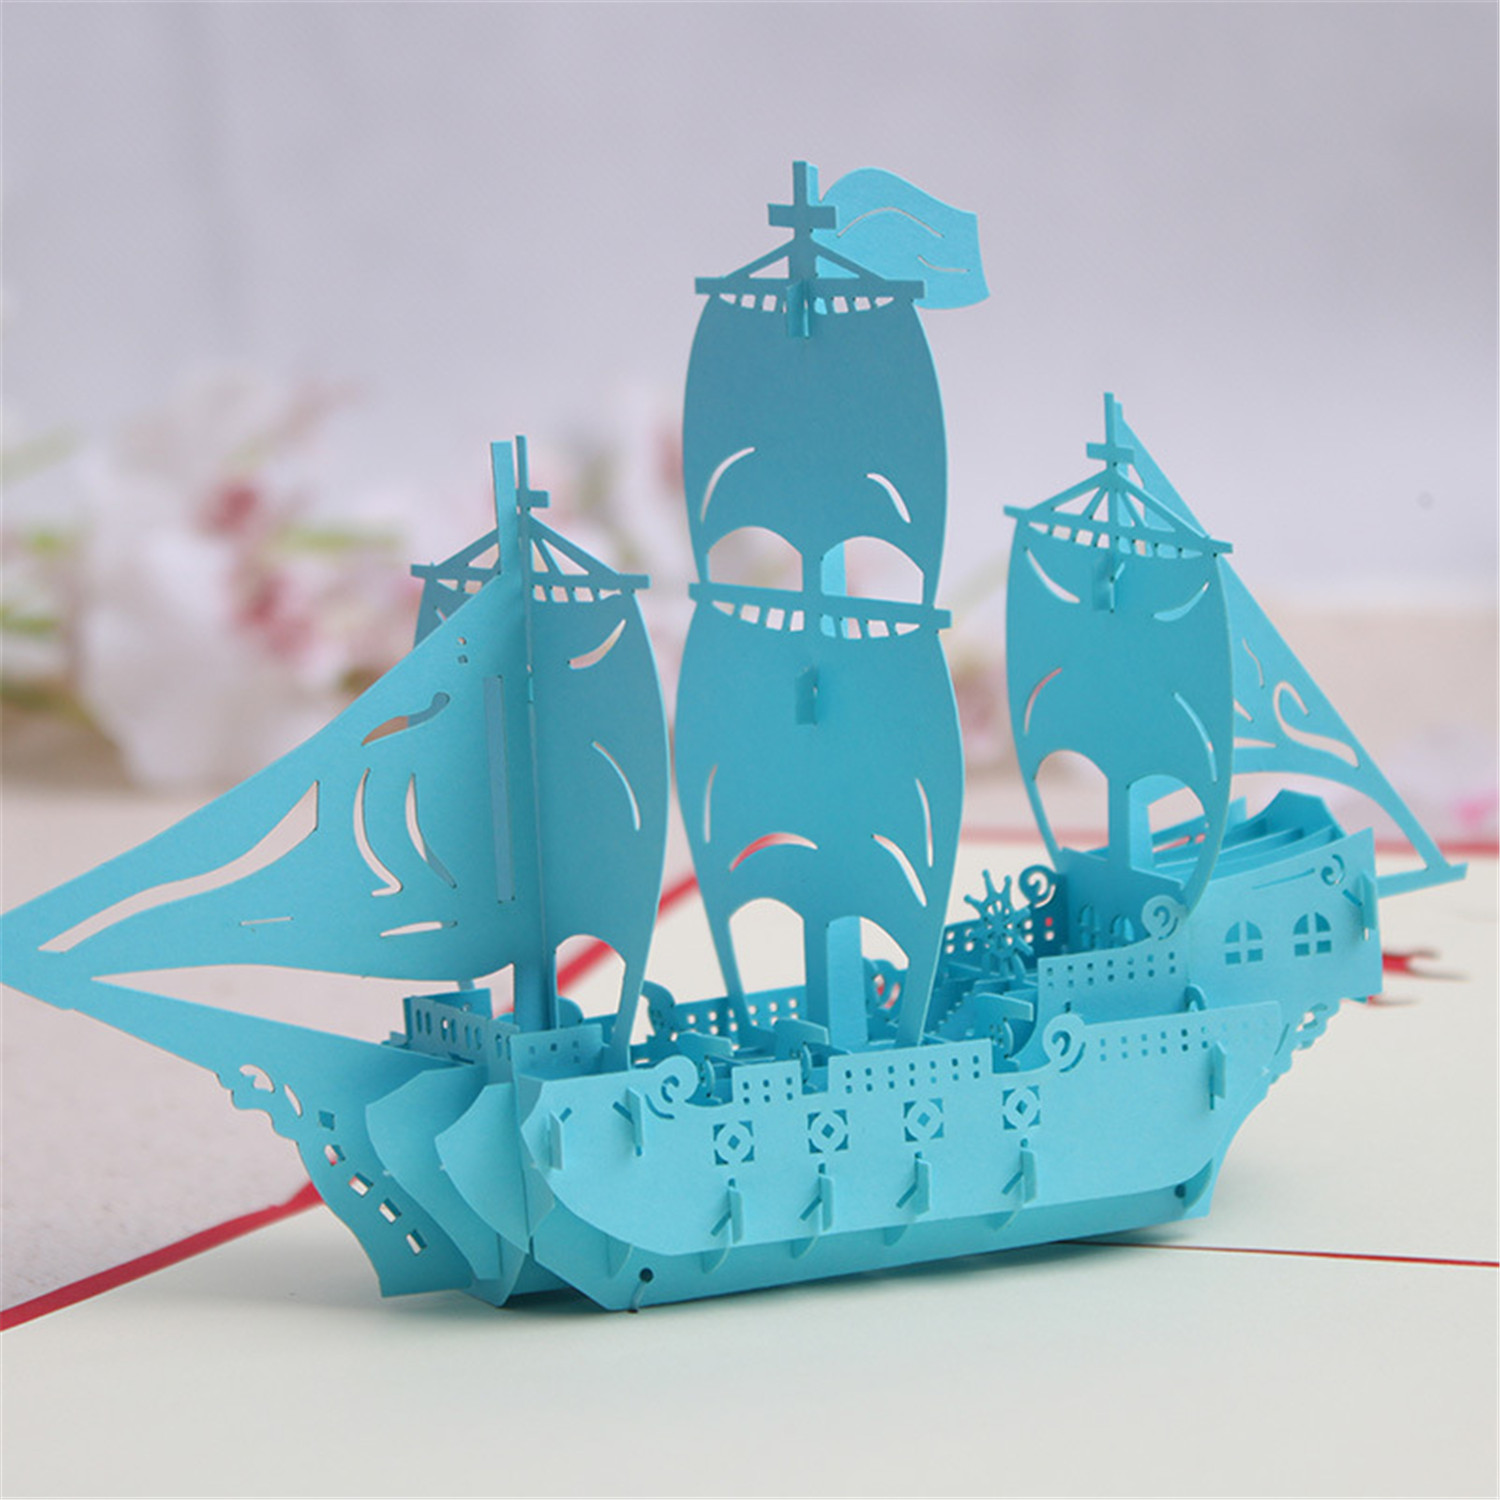 Boatus Christmas Cards 2020 3D Pop Up Greeting Cards Paper Sailing Boat US Shipping Home